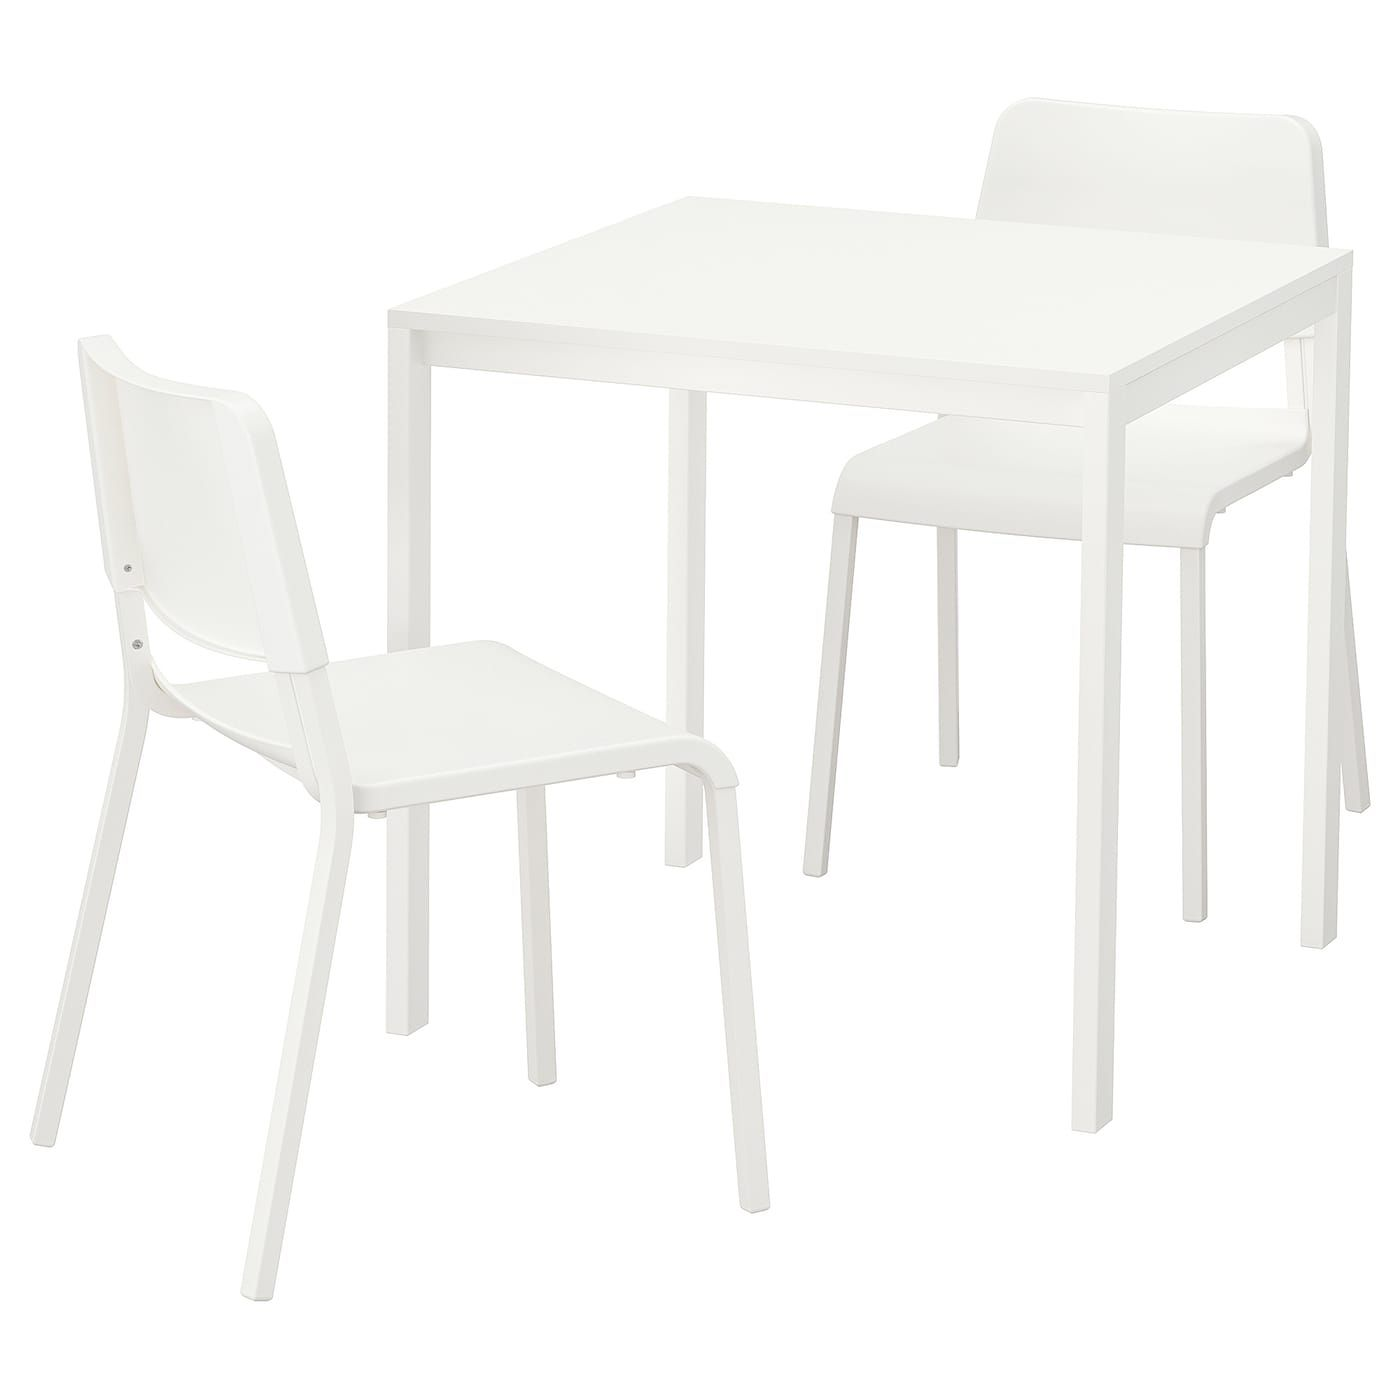 IKEA MELLTORP TEODORES White, White Table and 2 chairs